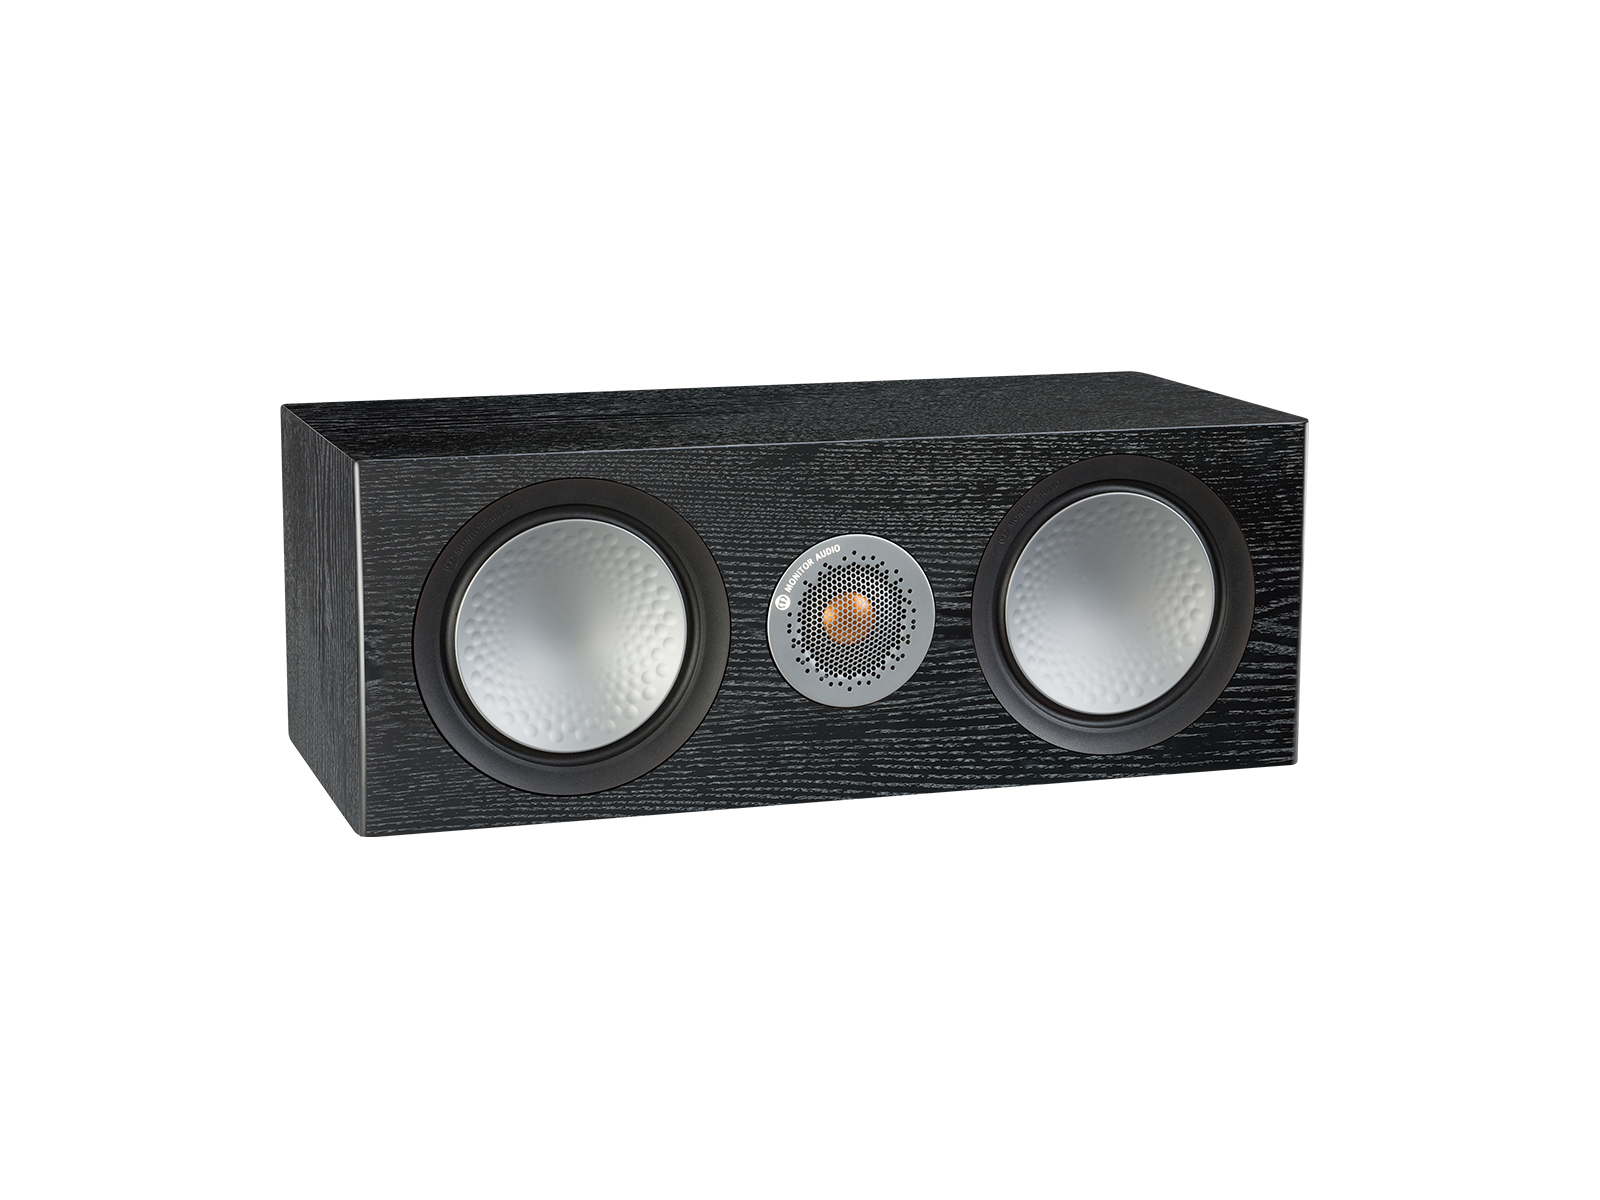 Silver C150, grille-less centre channel speakers, with a black oak finish.